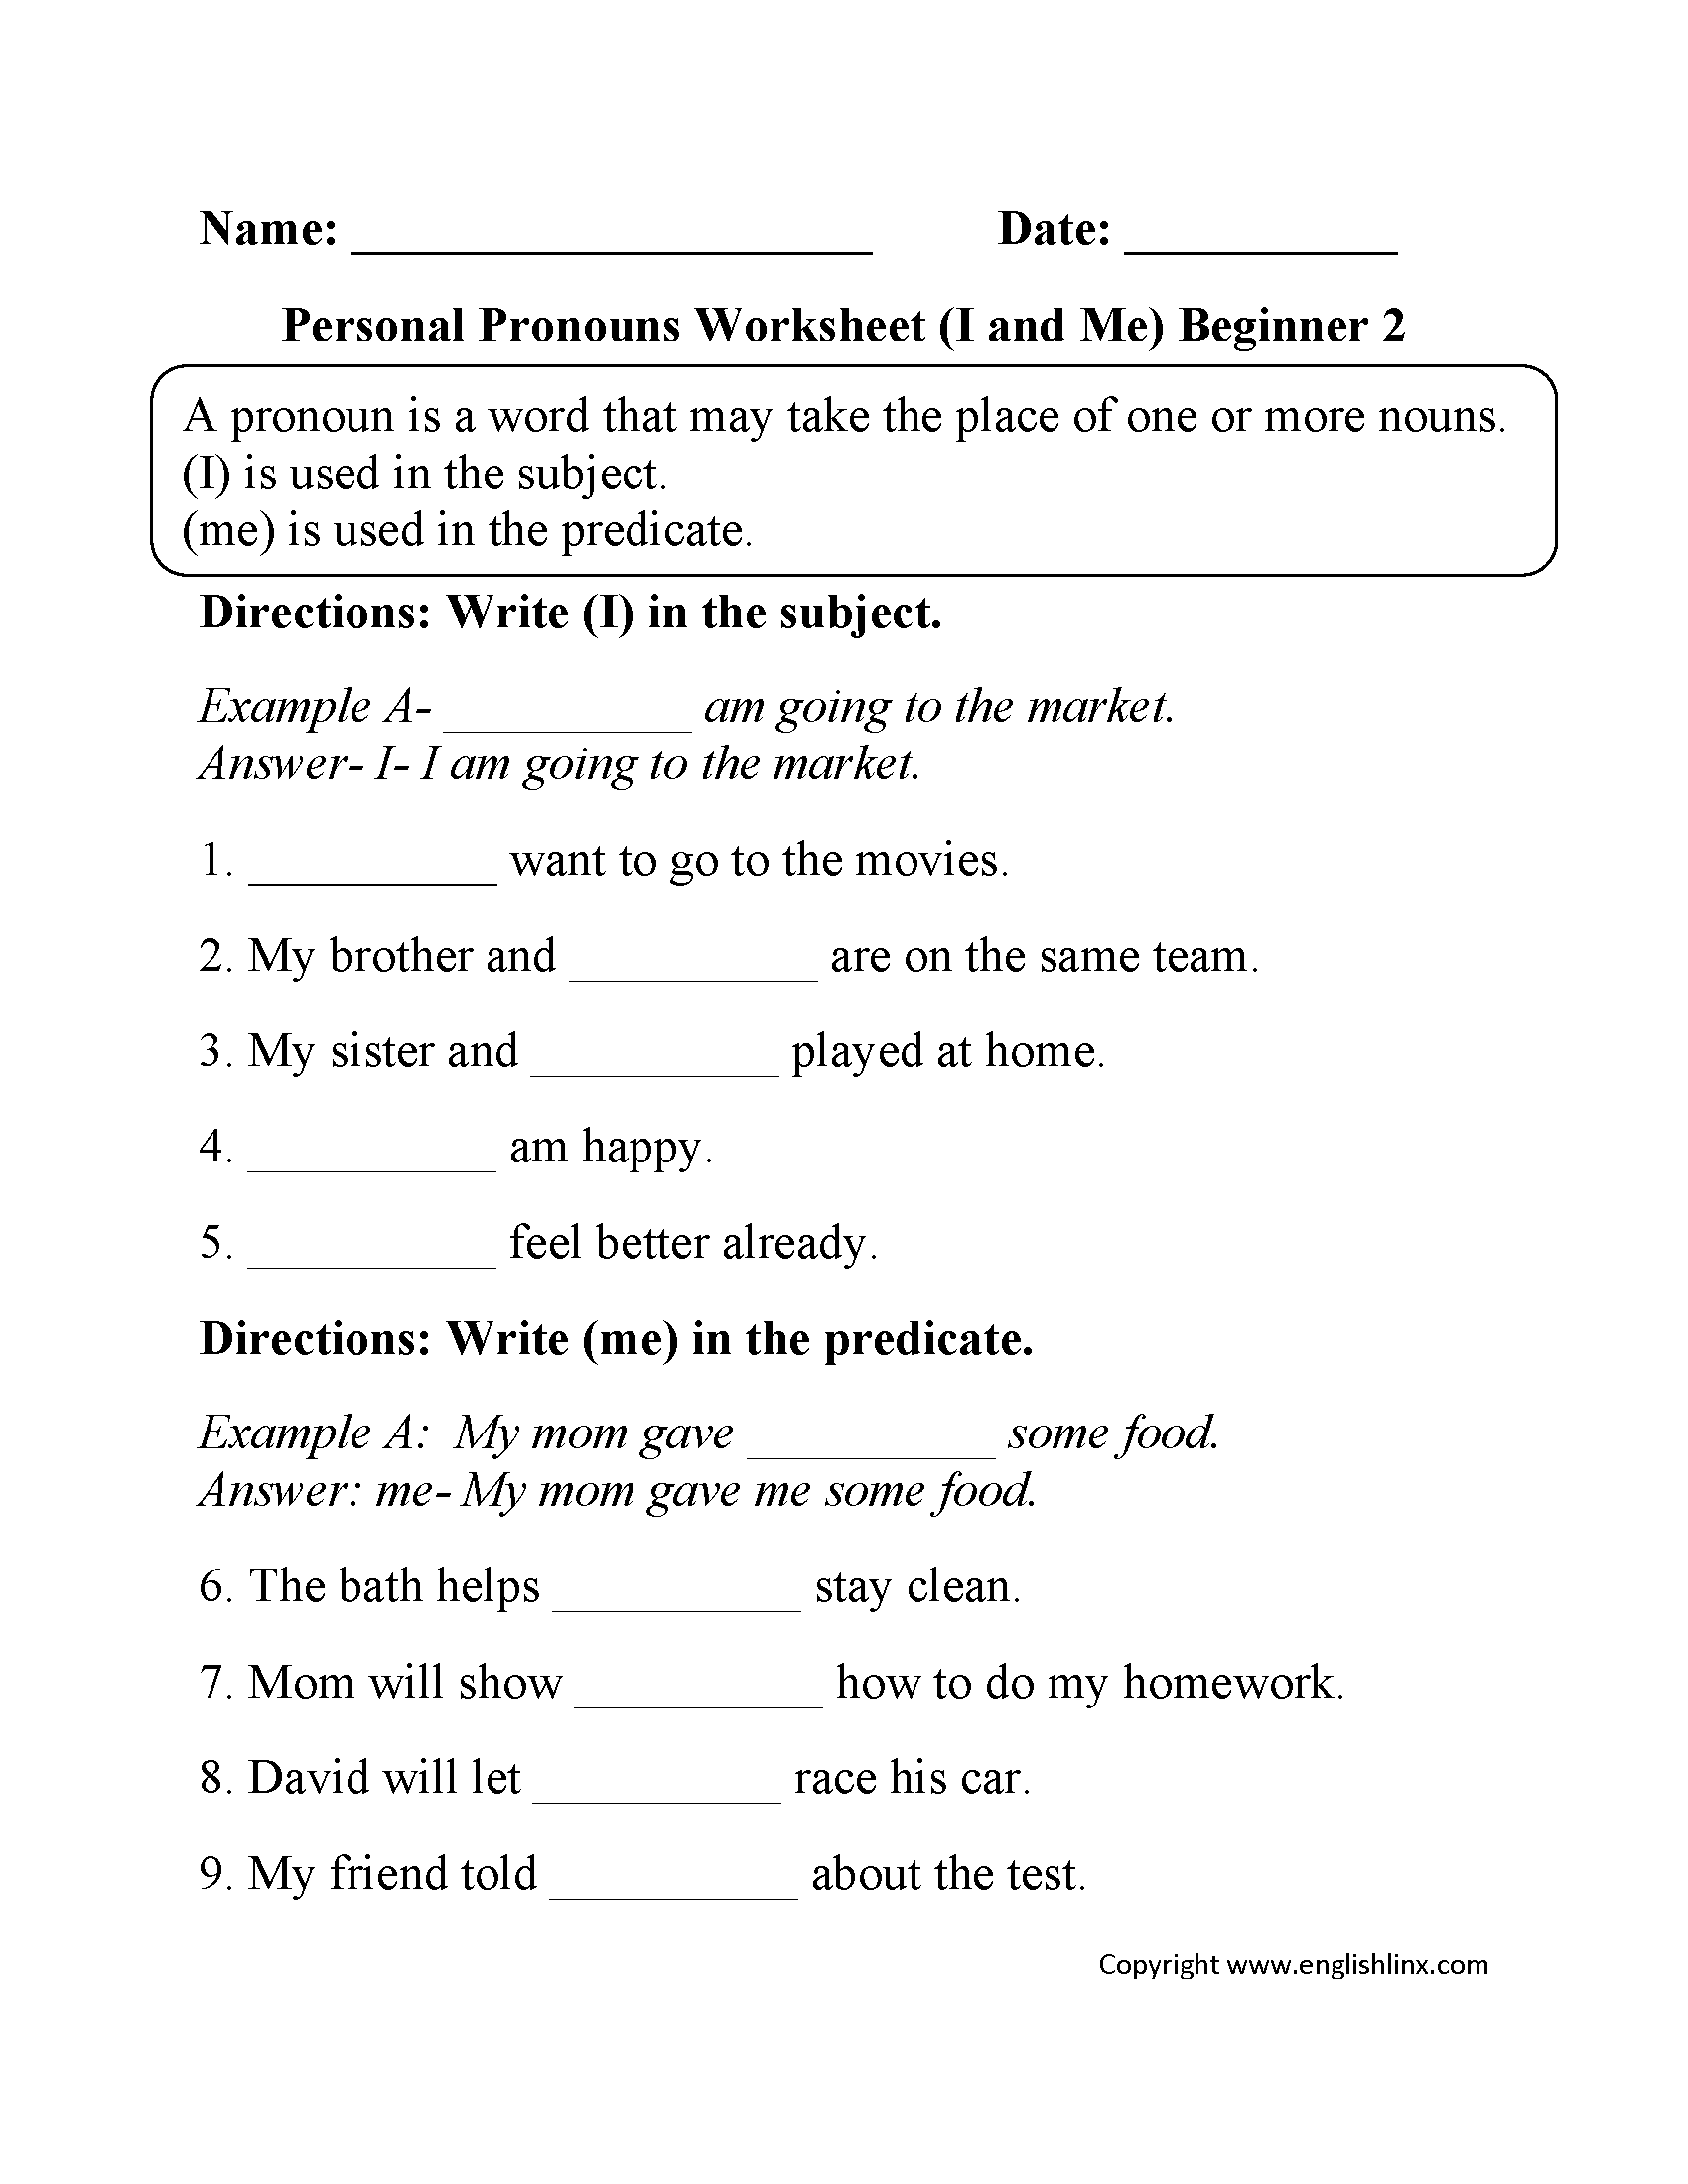 6th Grade Pronoun Worksheets The Best Worksheets Image Collection